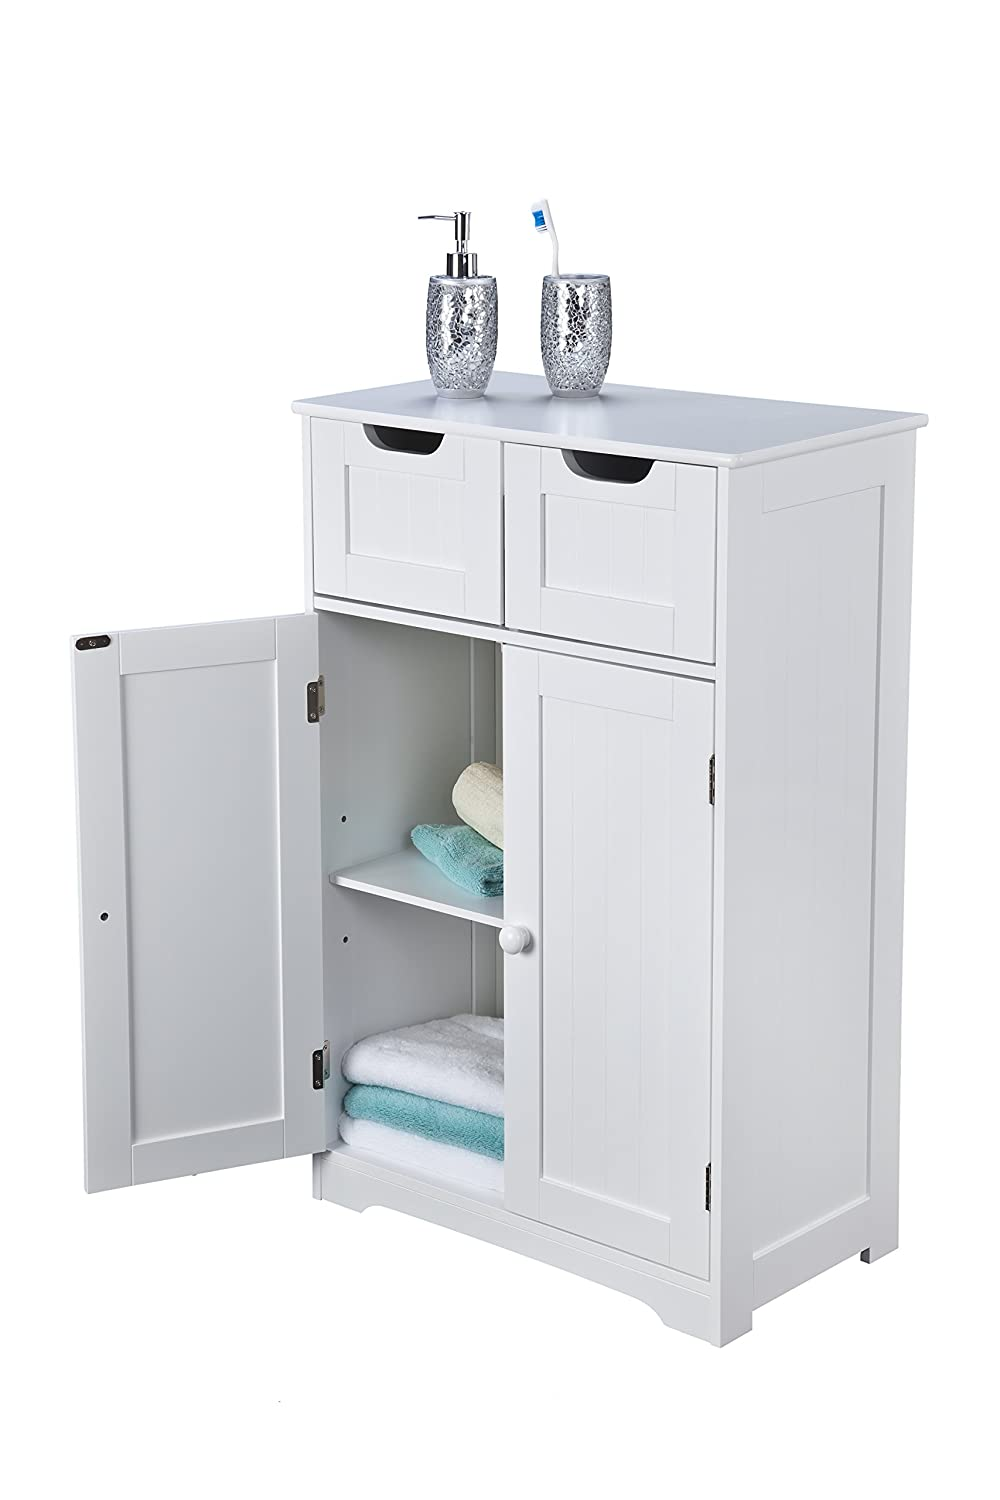 Elegant Brands Ltd Bathroom Cabinet, Wood, White, 83cm H x 56cm W x 30cm D IW-40215